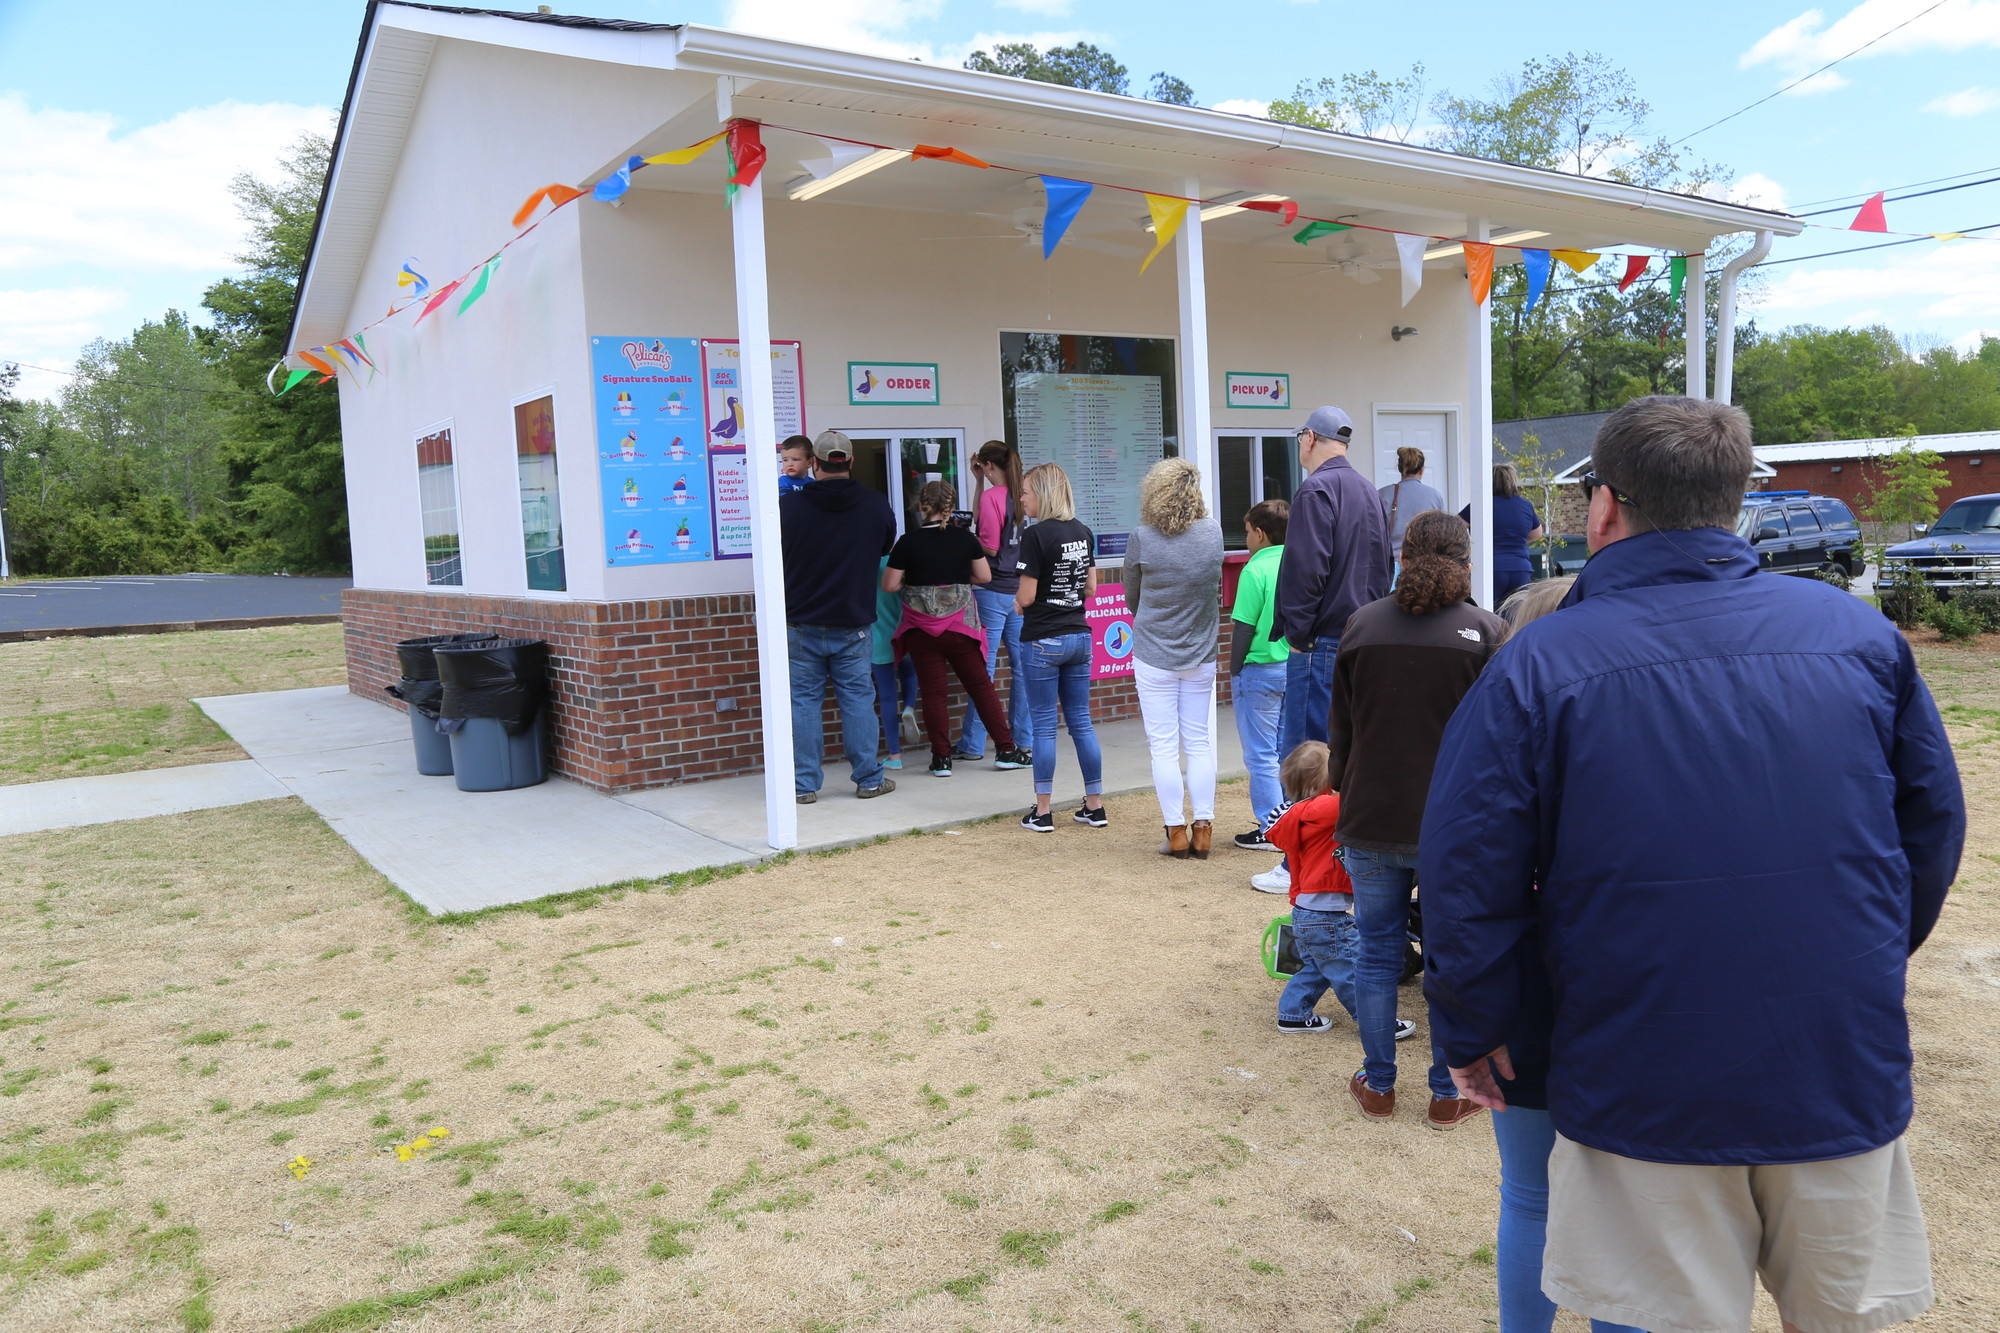 Despite temperatures in the high 50s Monday, a line of people wait to order at Pelican's SnoBalls, 471 N. Guignard Drive. The shaved ice snowball shop opened April 5. Hours are Monday-Saturday, noon to 9 p.m., and Sunday, 1 to 9 p.m. For more information, visit www.pelicanssnoballs.com.